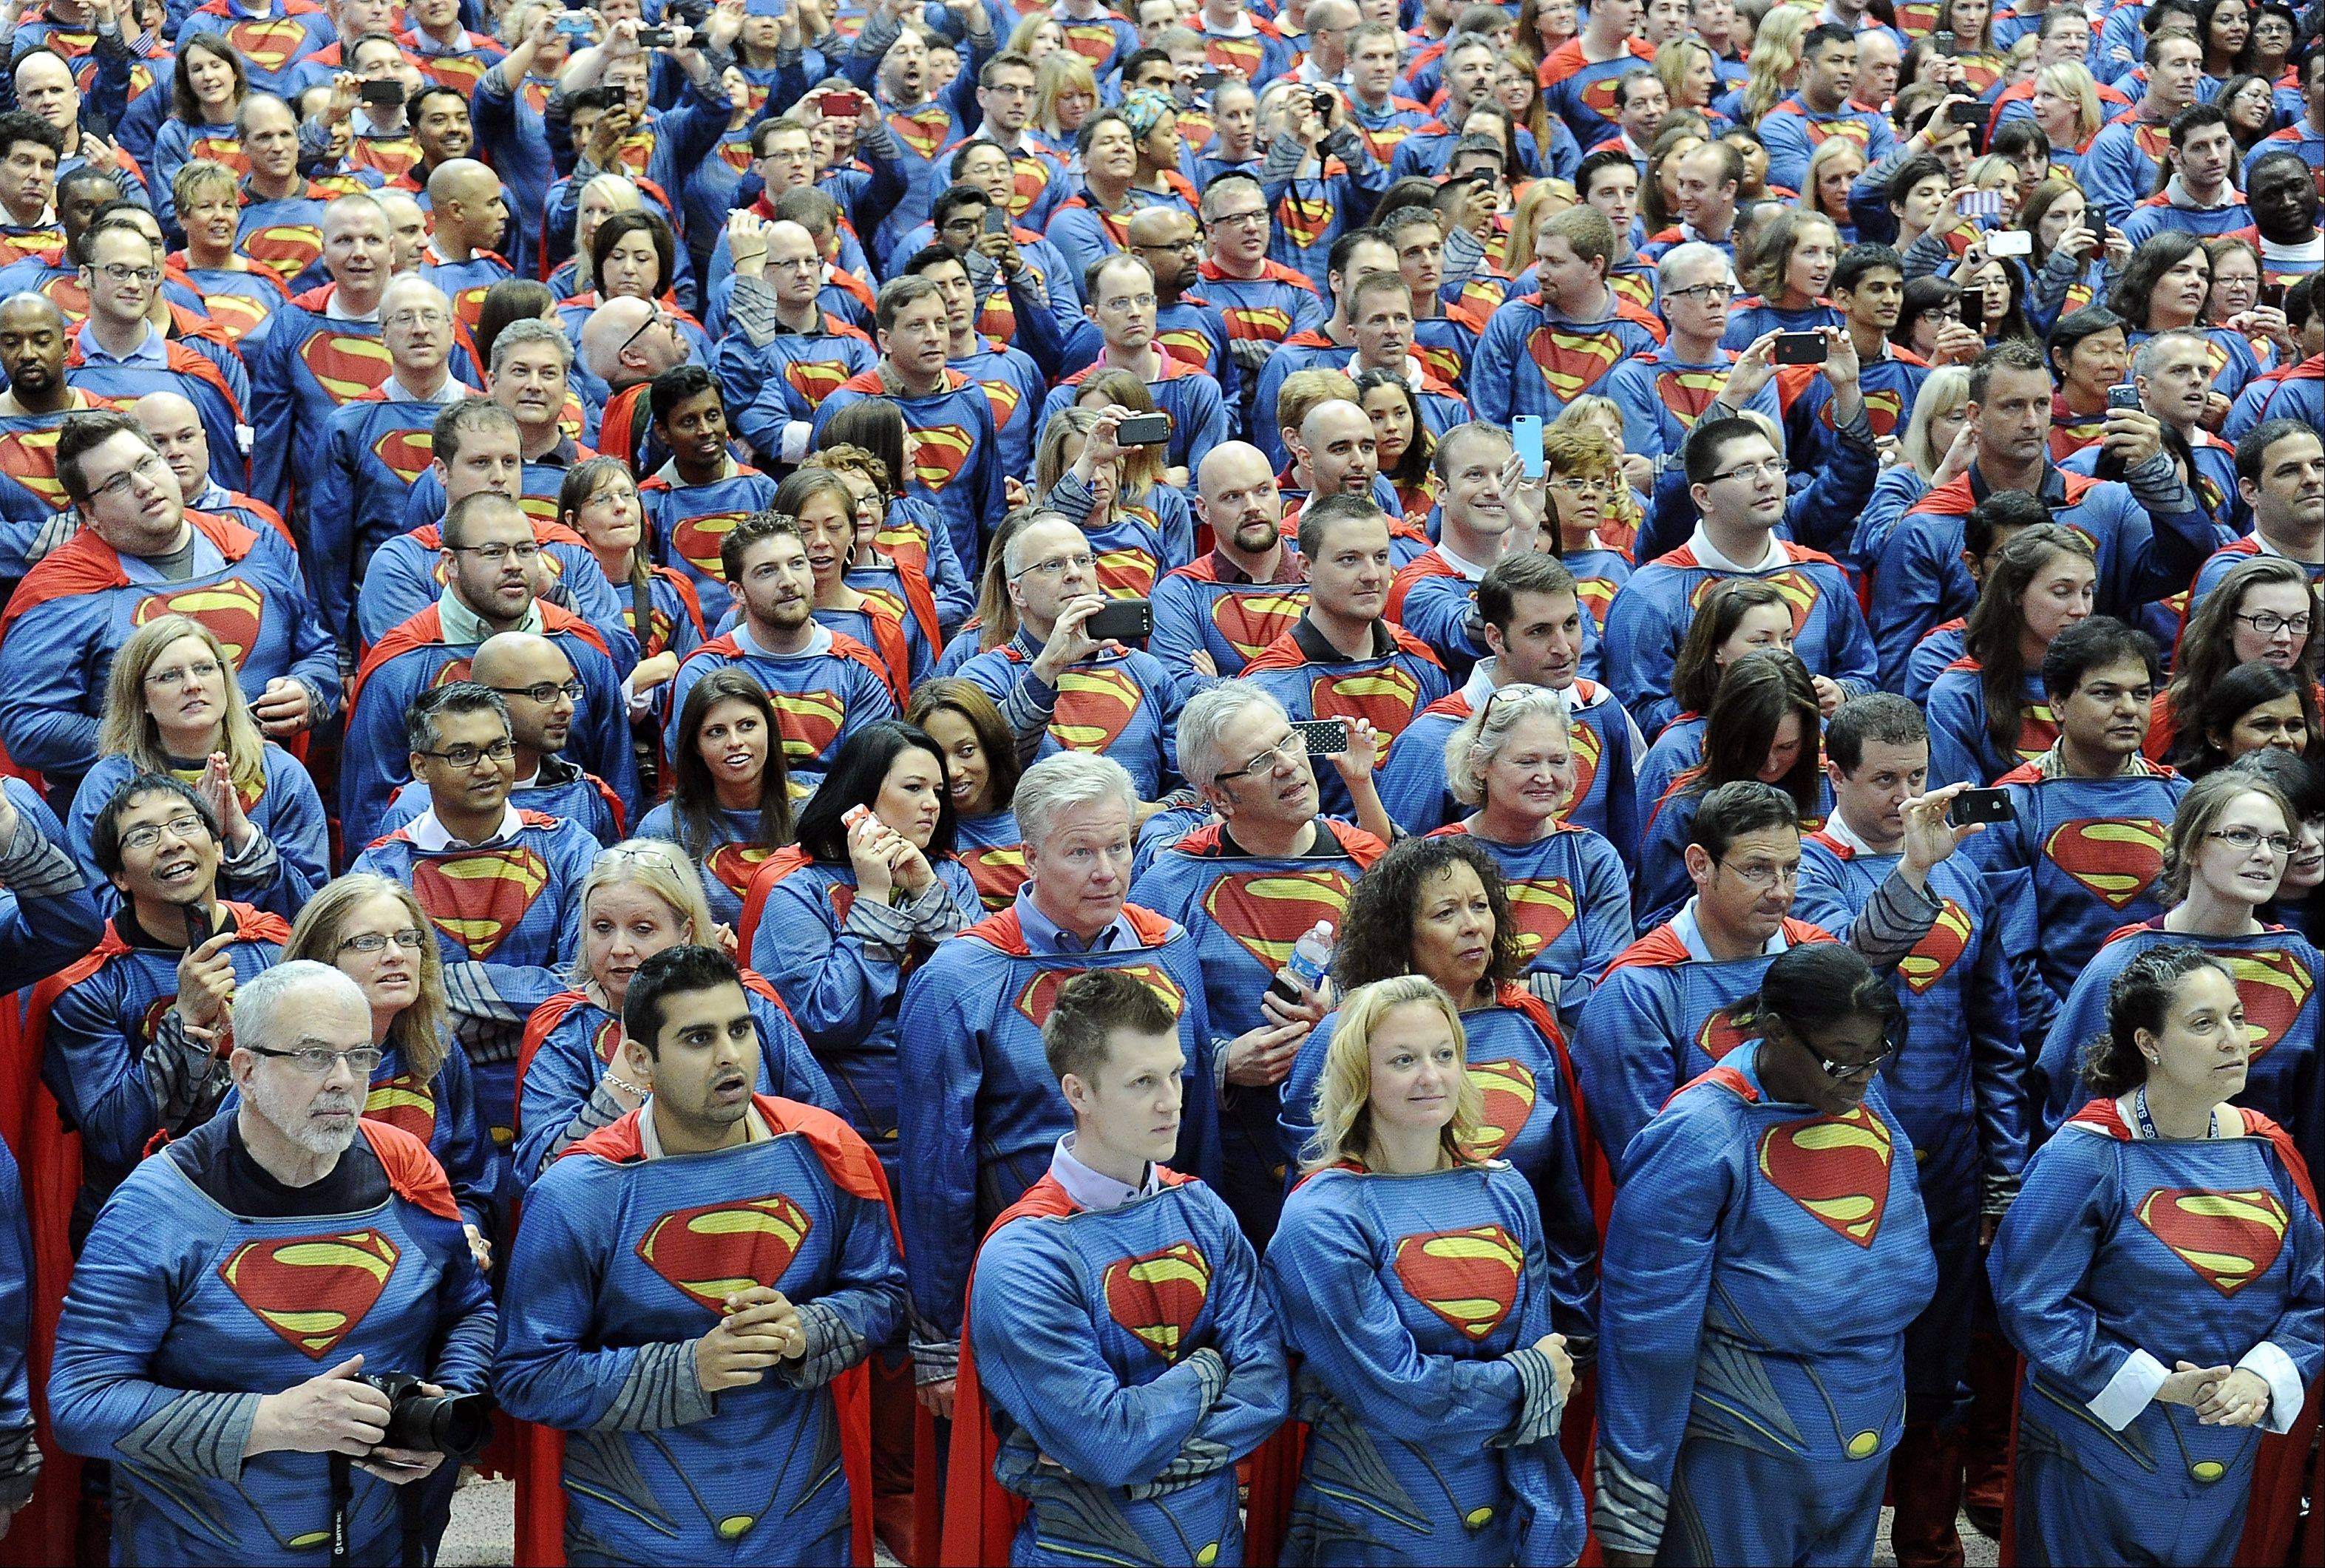 Sears Holdings Corp. employees -- 566 of them in all -- helped set a Guinness World Record at the company's Hoffman Estates headquarters.